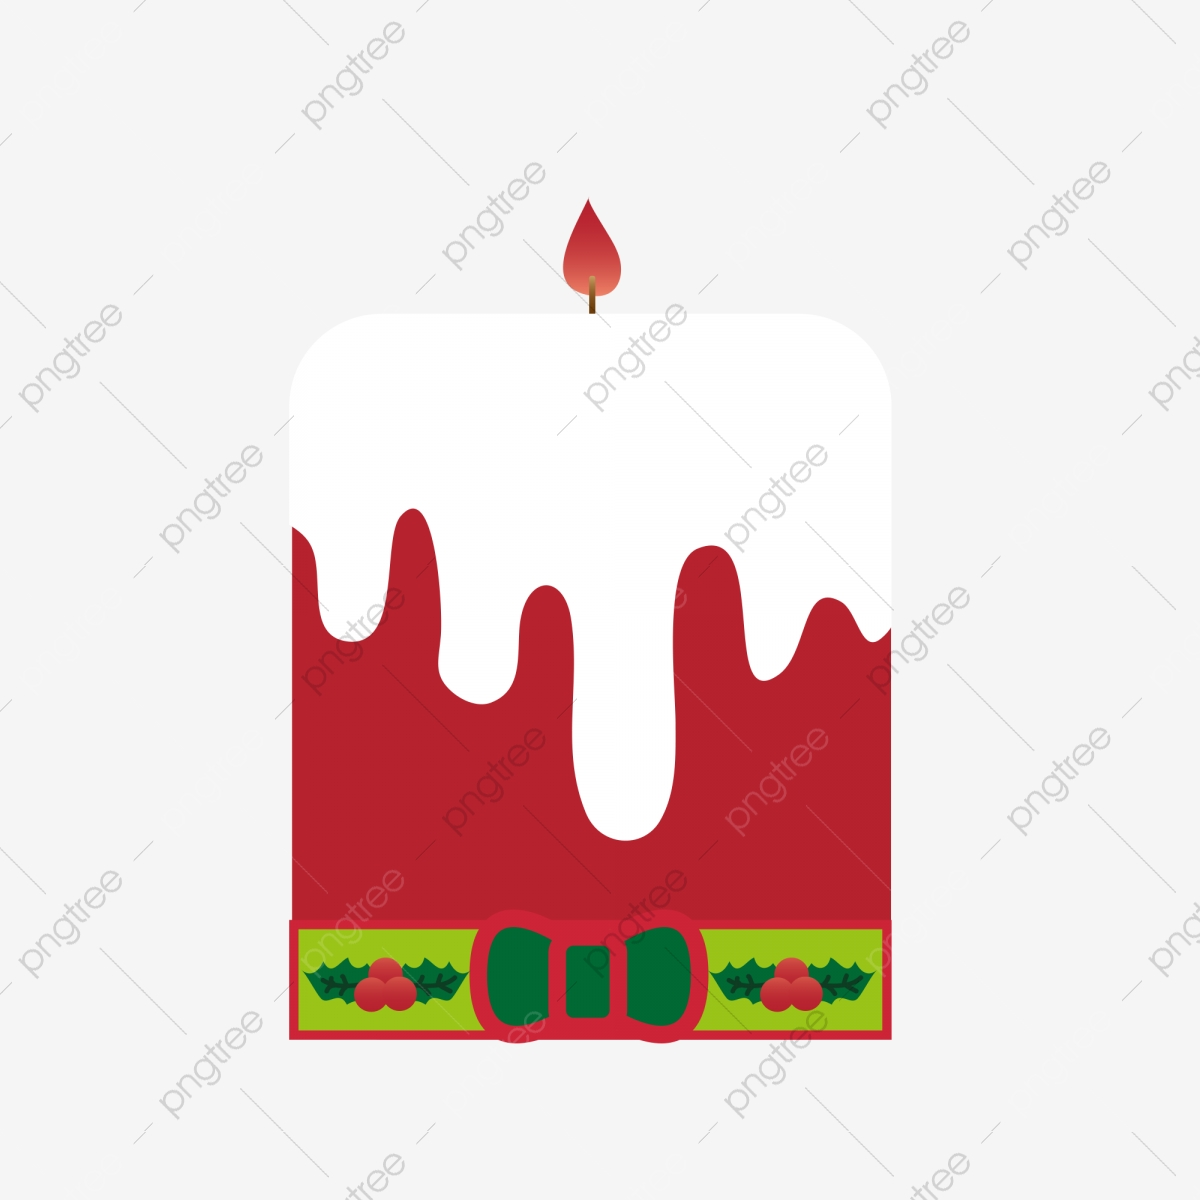 Red Cake Candle Christmas Birthday Cake Art Cake Cream